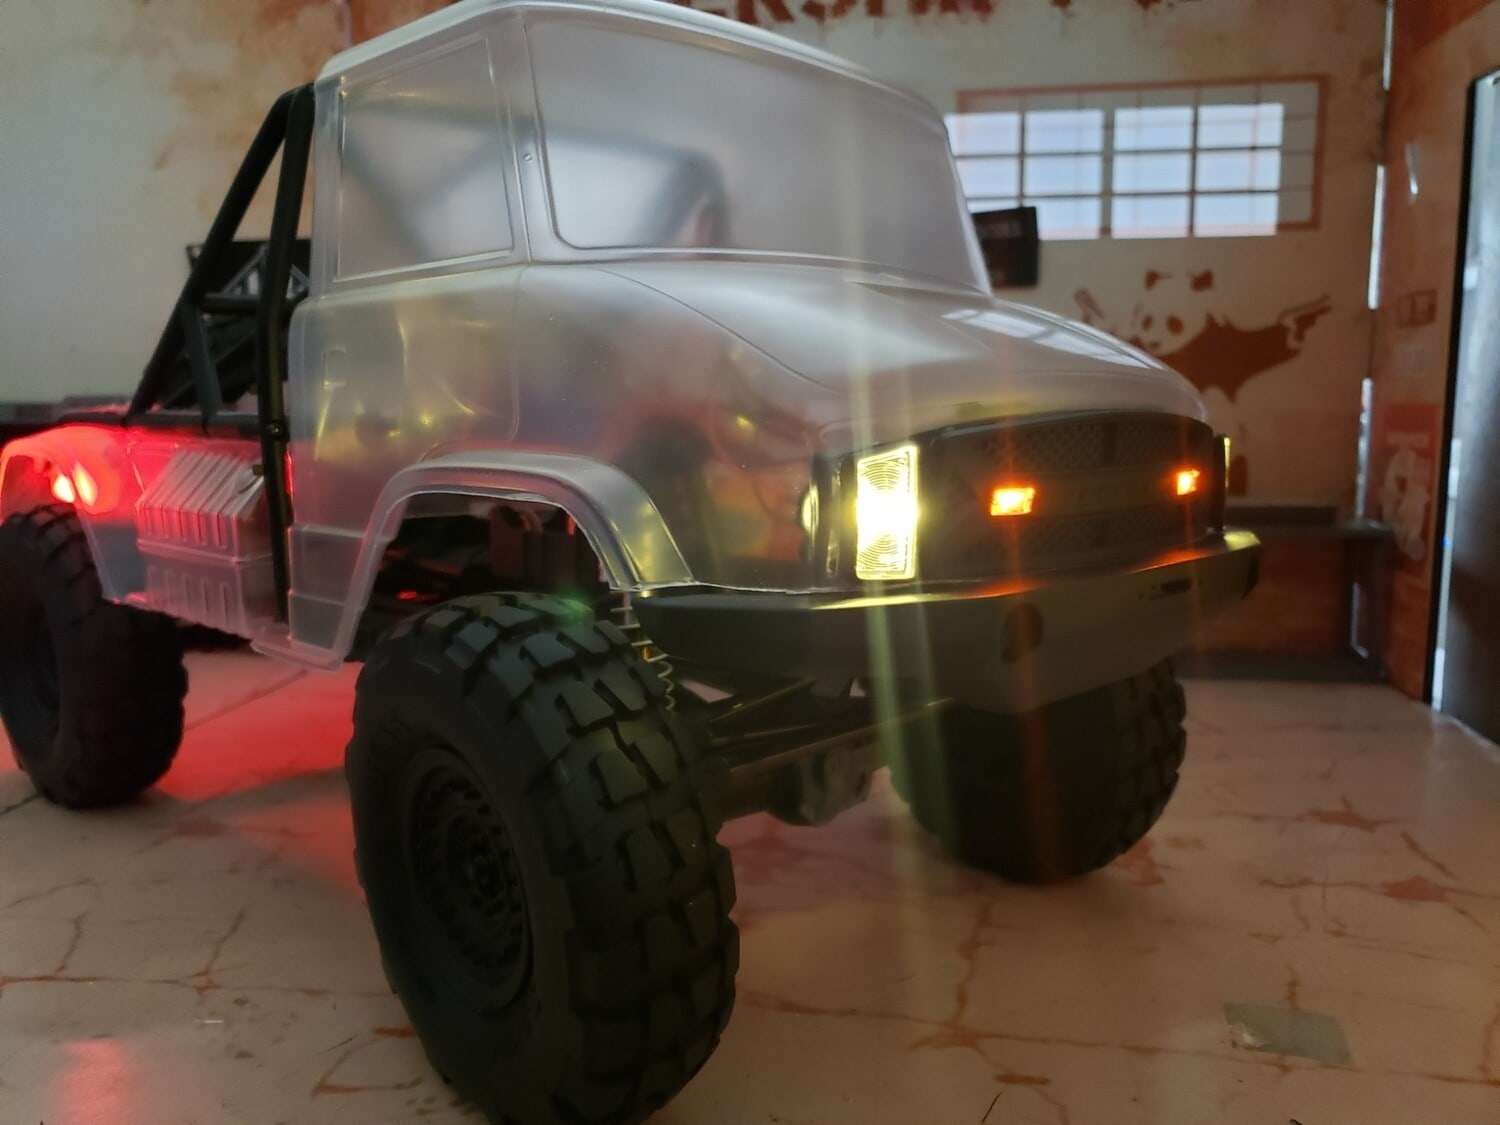 Powershift RC Releases LED Lighting Options for the Axial UMG10 Kit